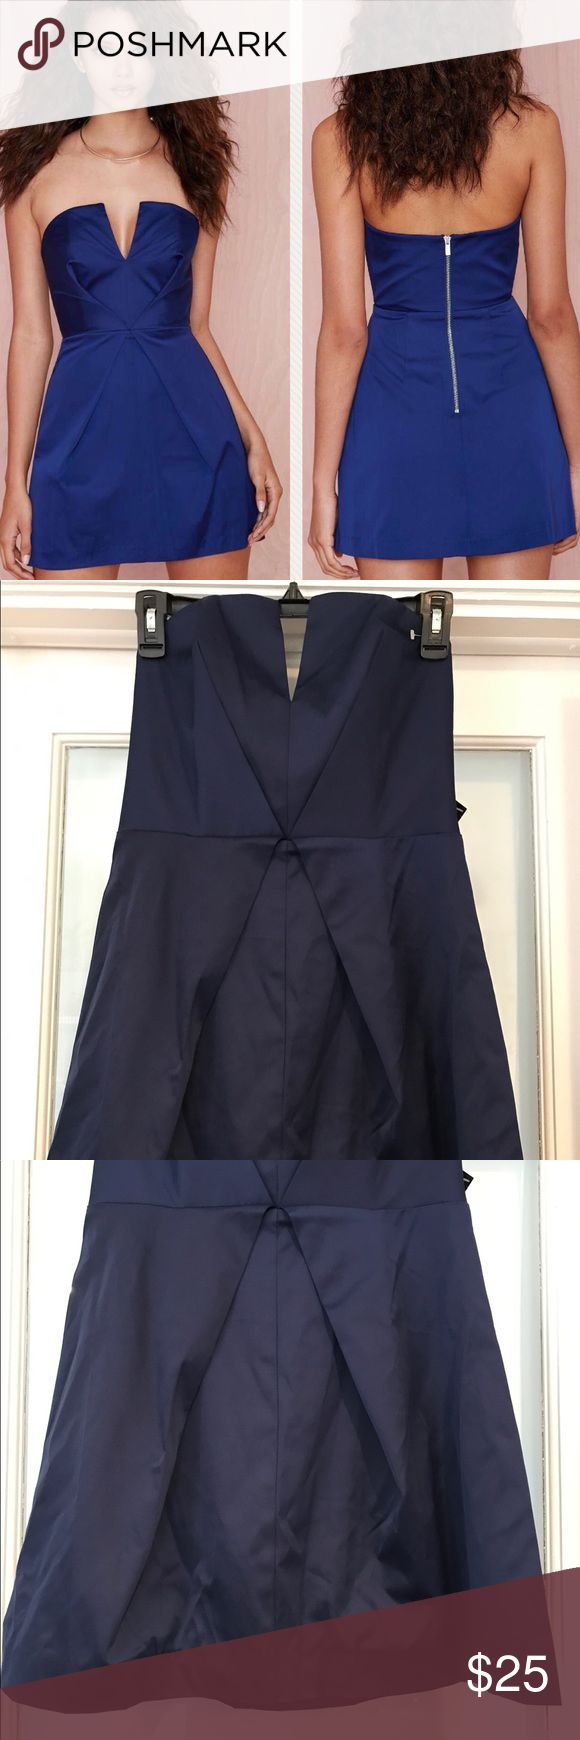 Nasty Gal Inside Out Dress Satin feel, Deep v-neck detail, exposed silver zipper closure. Price tag missing but has other tag attached. Never worn. In excellent condition. Color resembles stock photo, my phone couldn't capture the true color. Nasty Gal Dresses